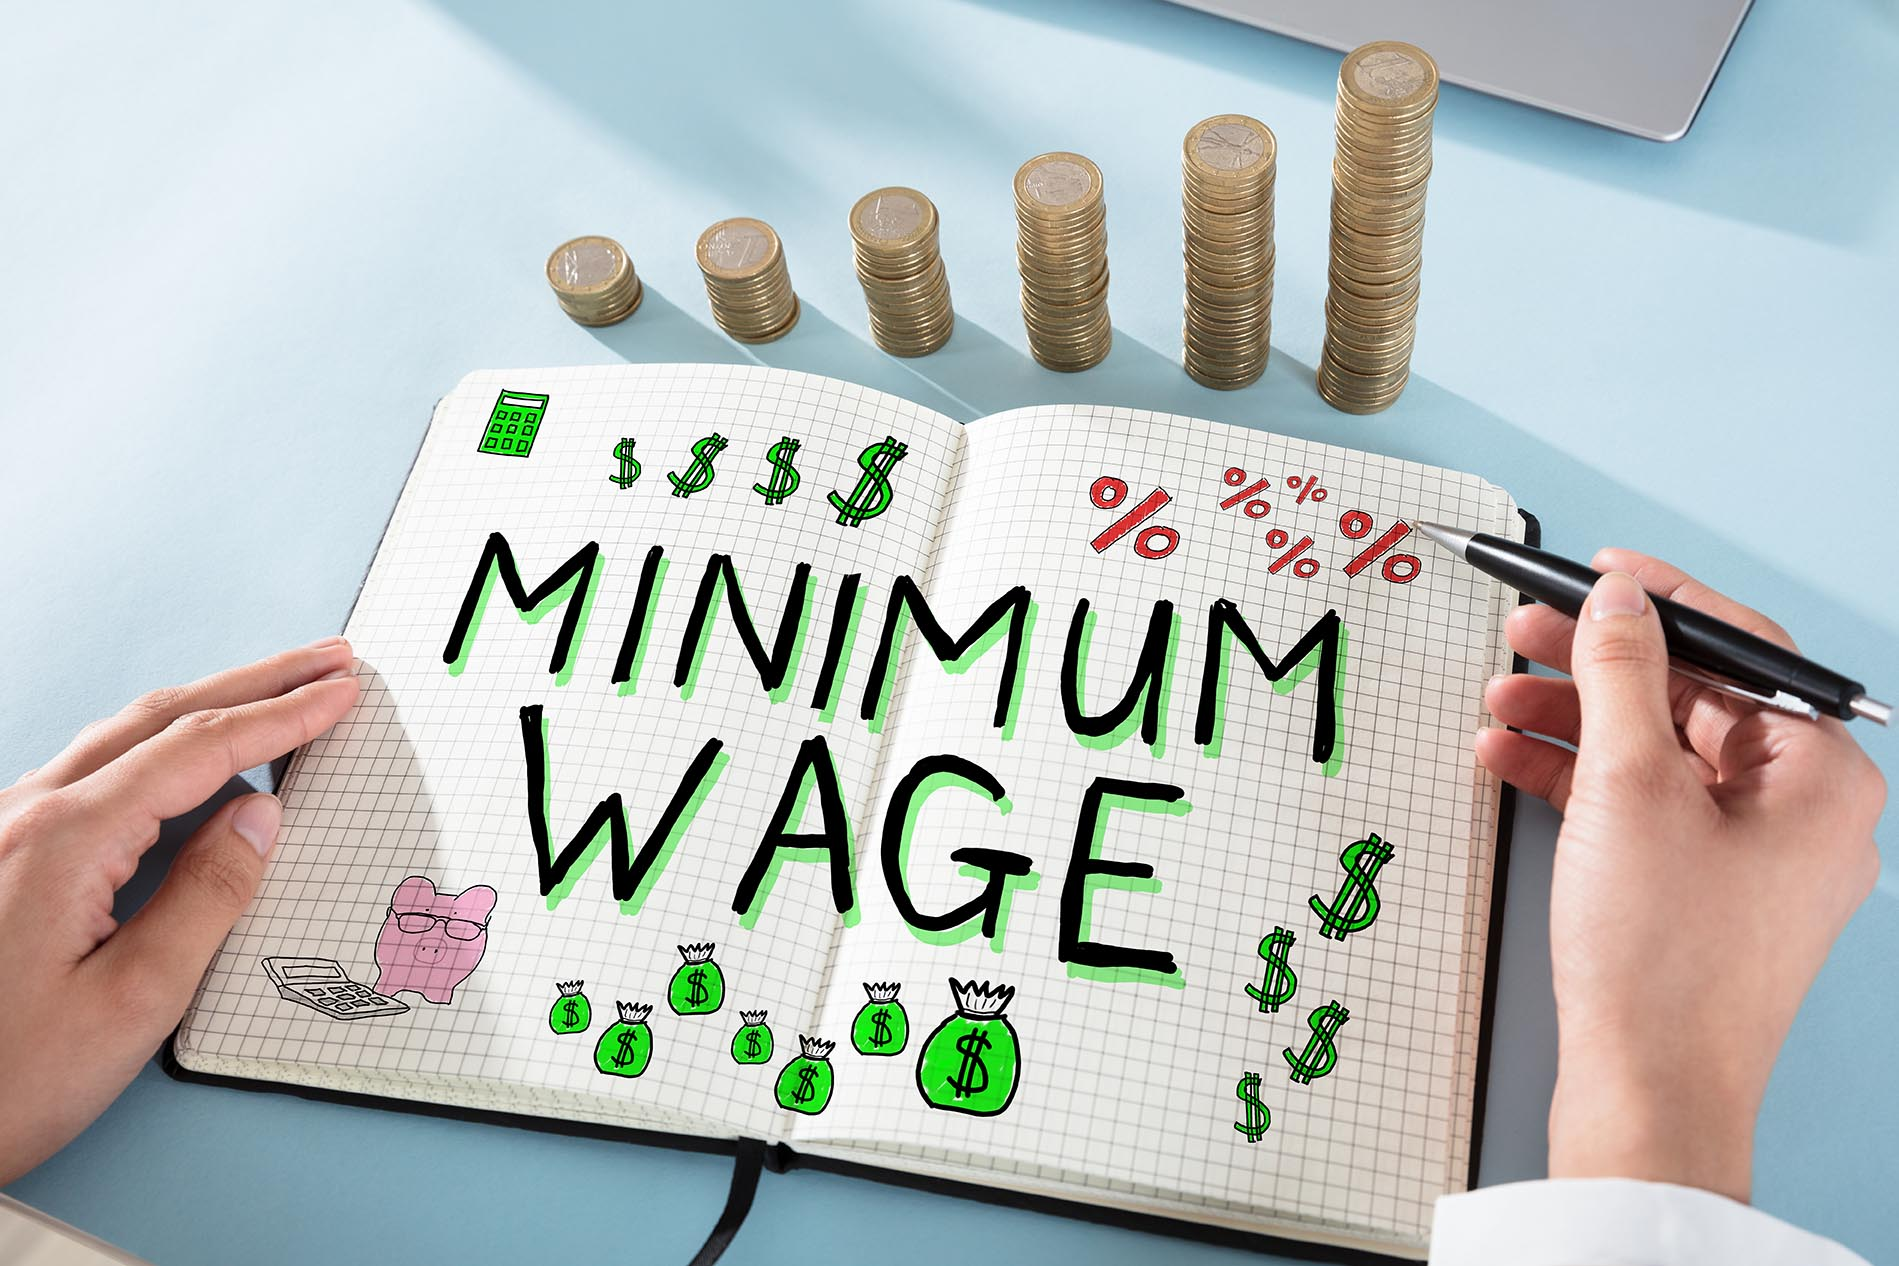 We need a minimum wage in Singapore